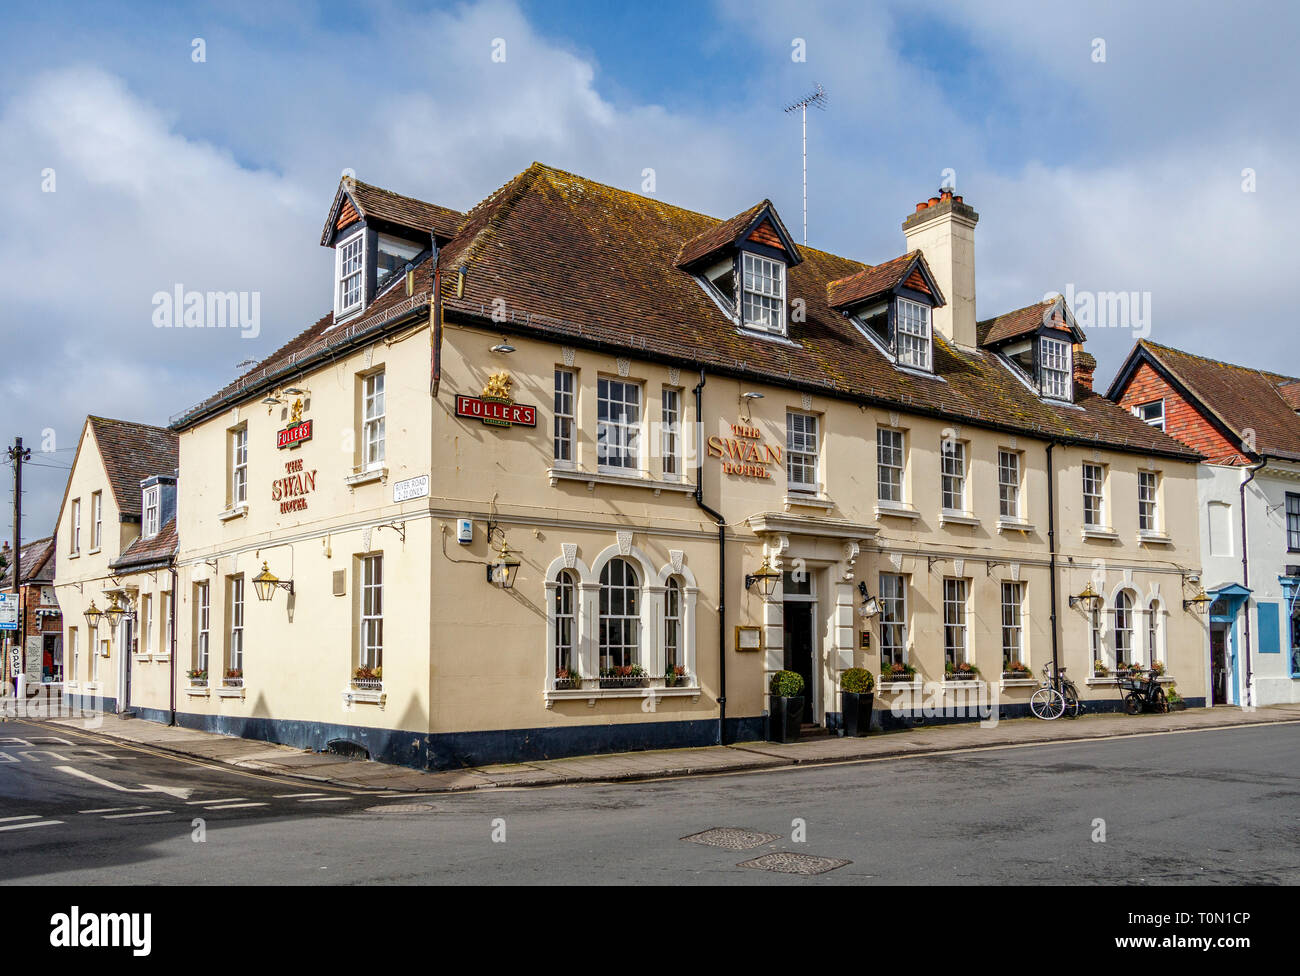 The 1759 Swan Hotel & Public House. A traditional Georgian architectural styled business beside the River Arun in Arundel, West Sussex, UK. - Stock Image